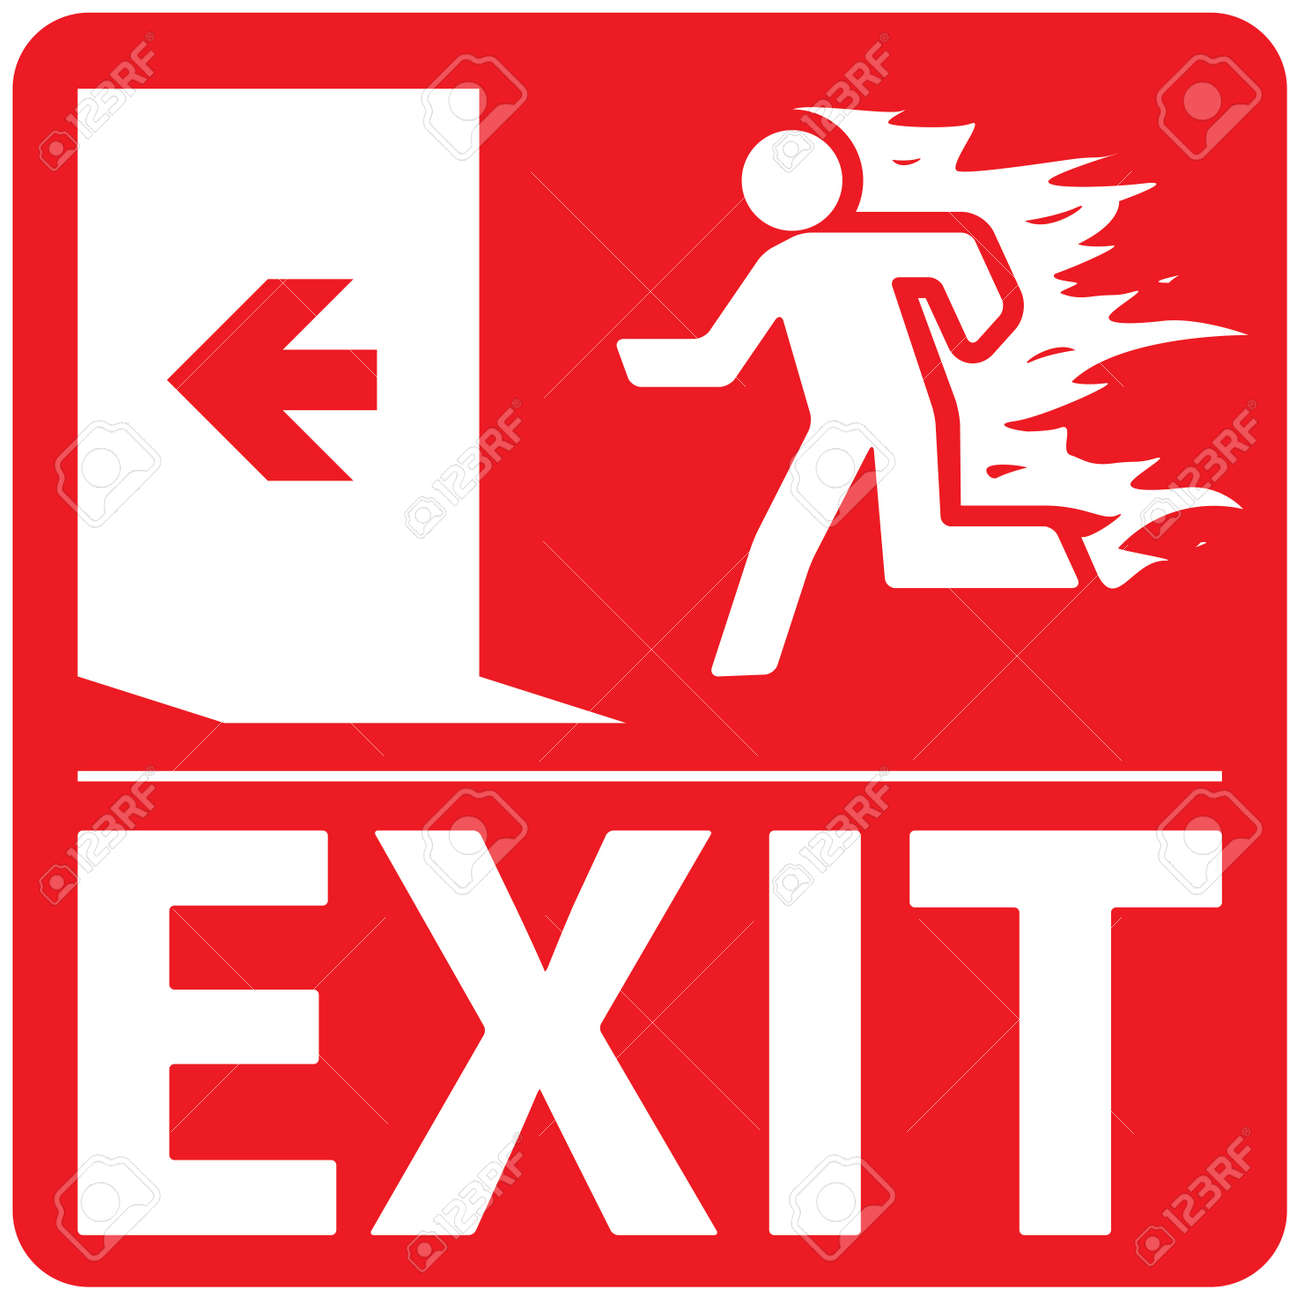 Free Clipart Exit Sign   Free Images at Clker.com - vector clip art online,  royalty free & public domain